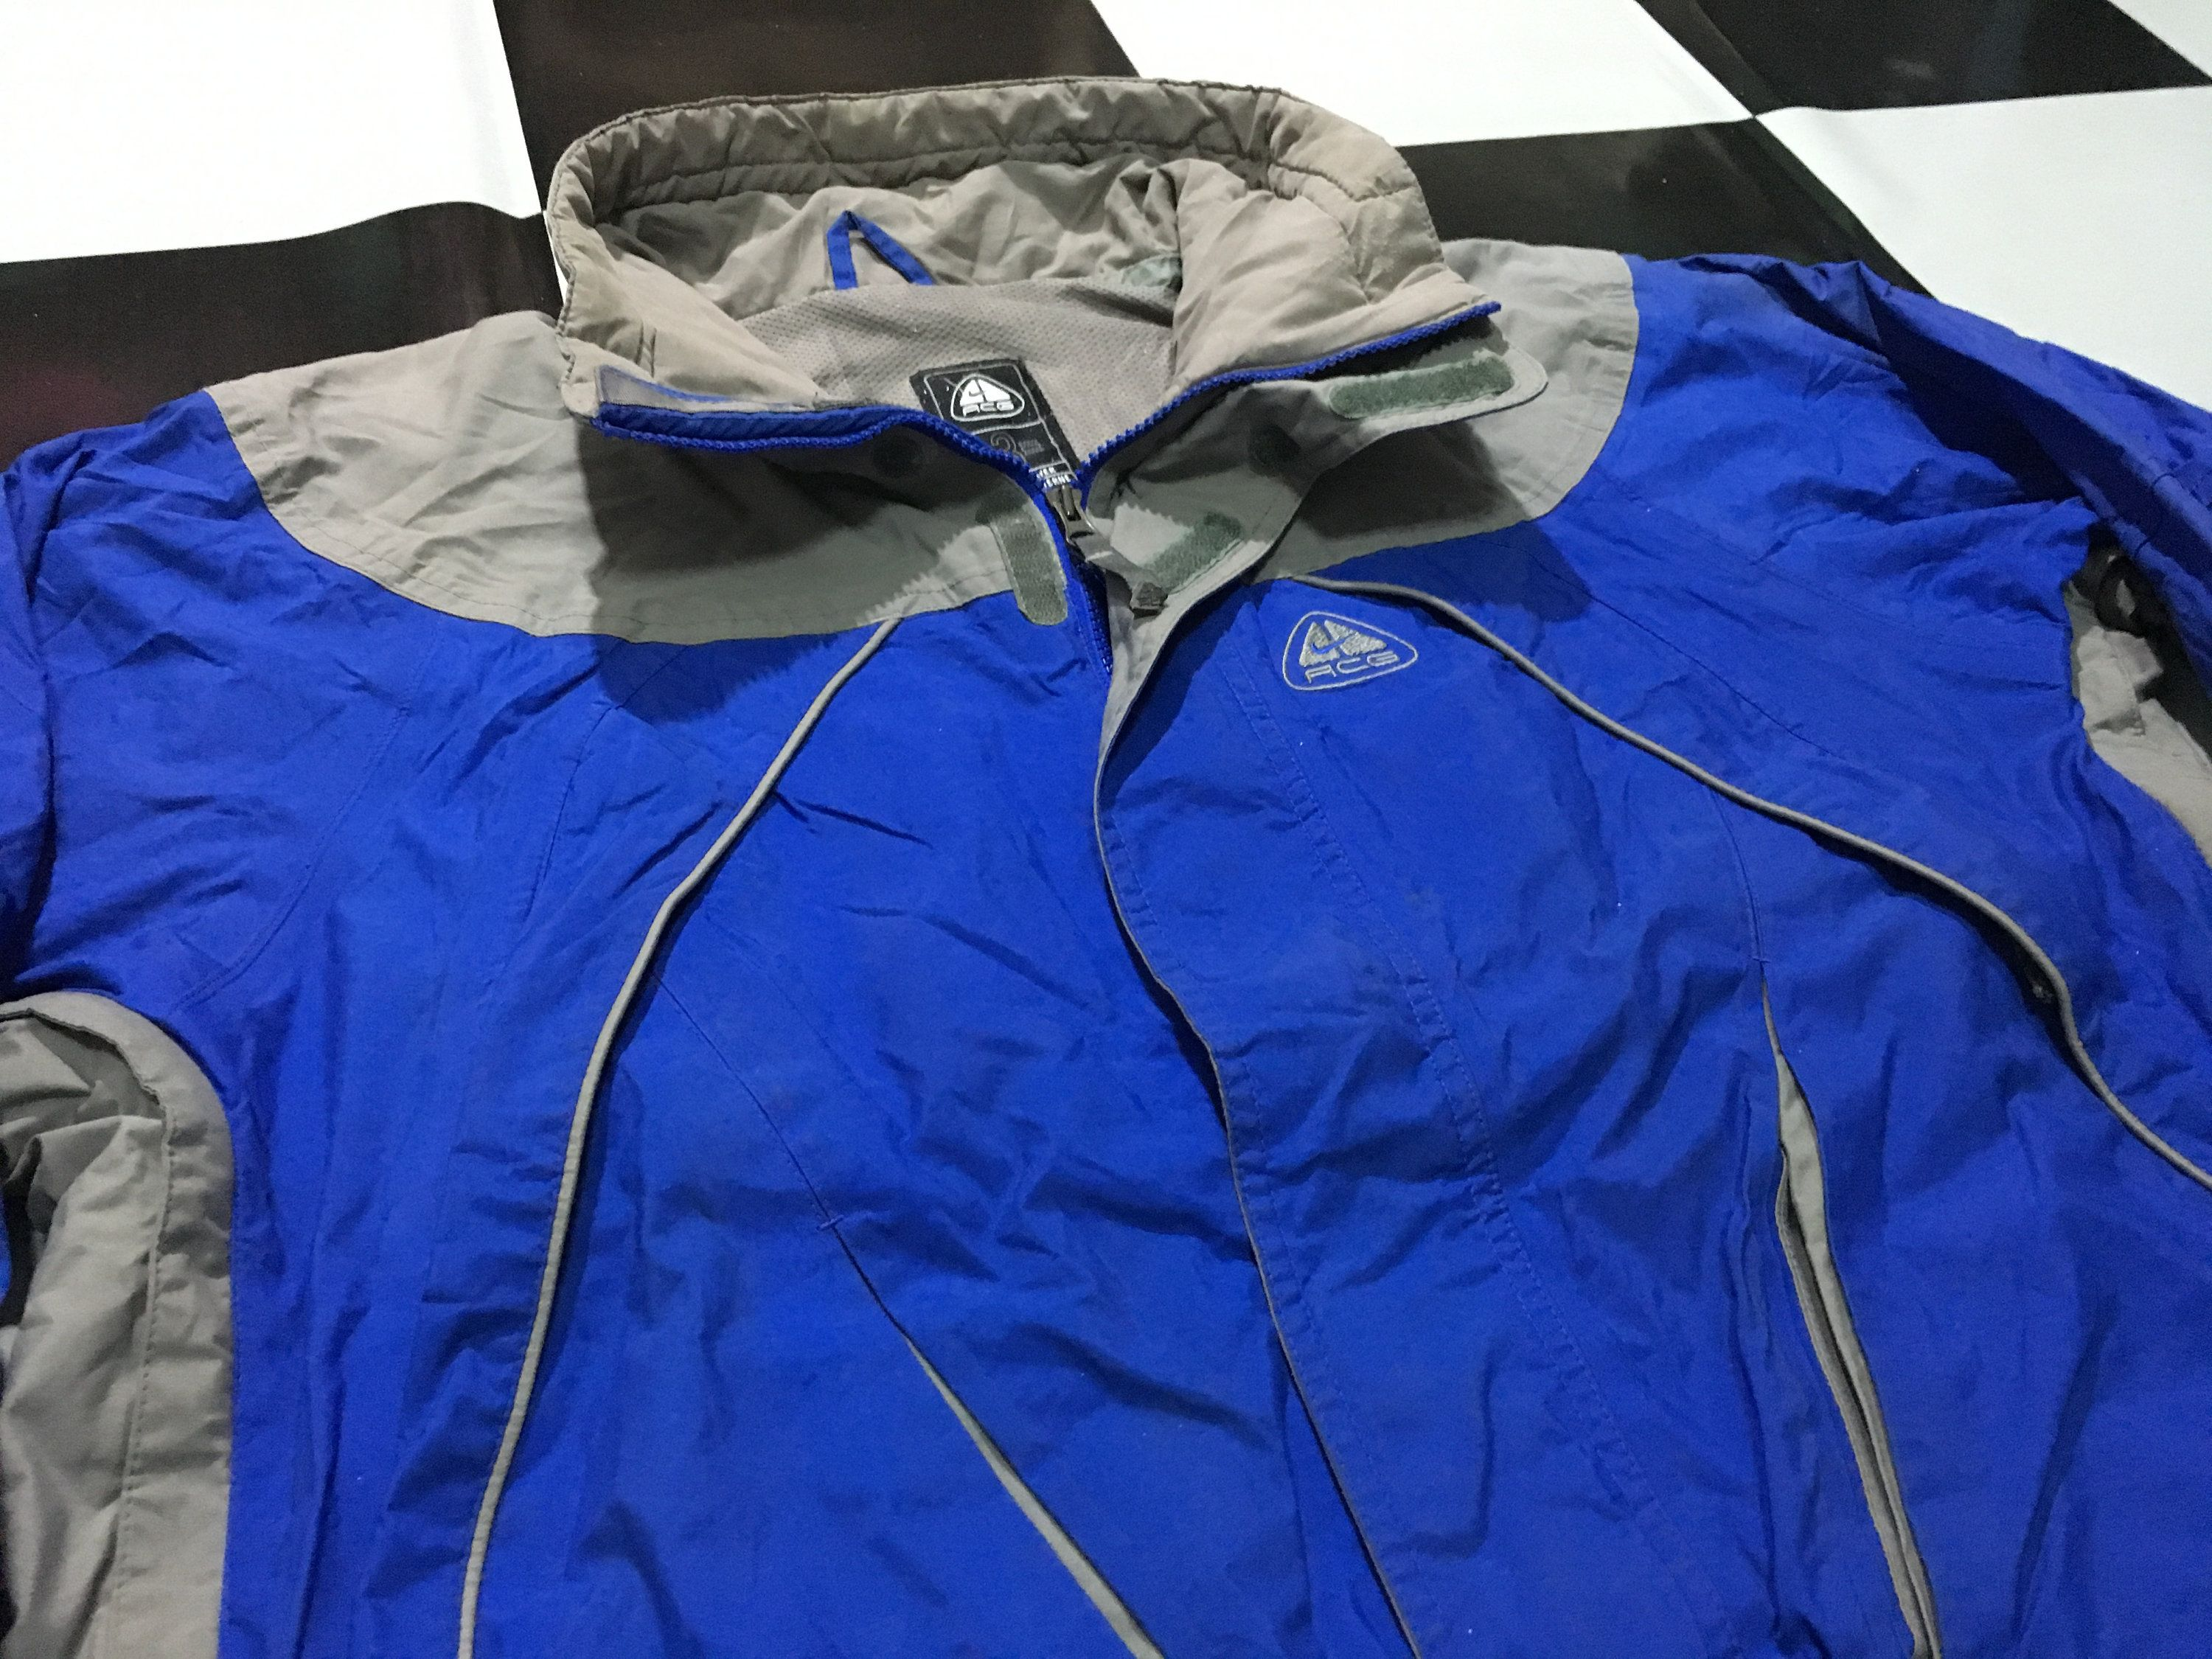 87e0dbc331 Vintage Nike ACG jacket windbreaker waterproof jacket insulated Nike all  conditions gear embroidered logo Blue Gray Size L Good condition by ...